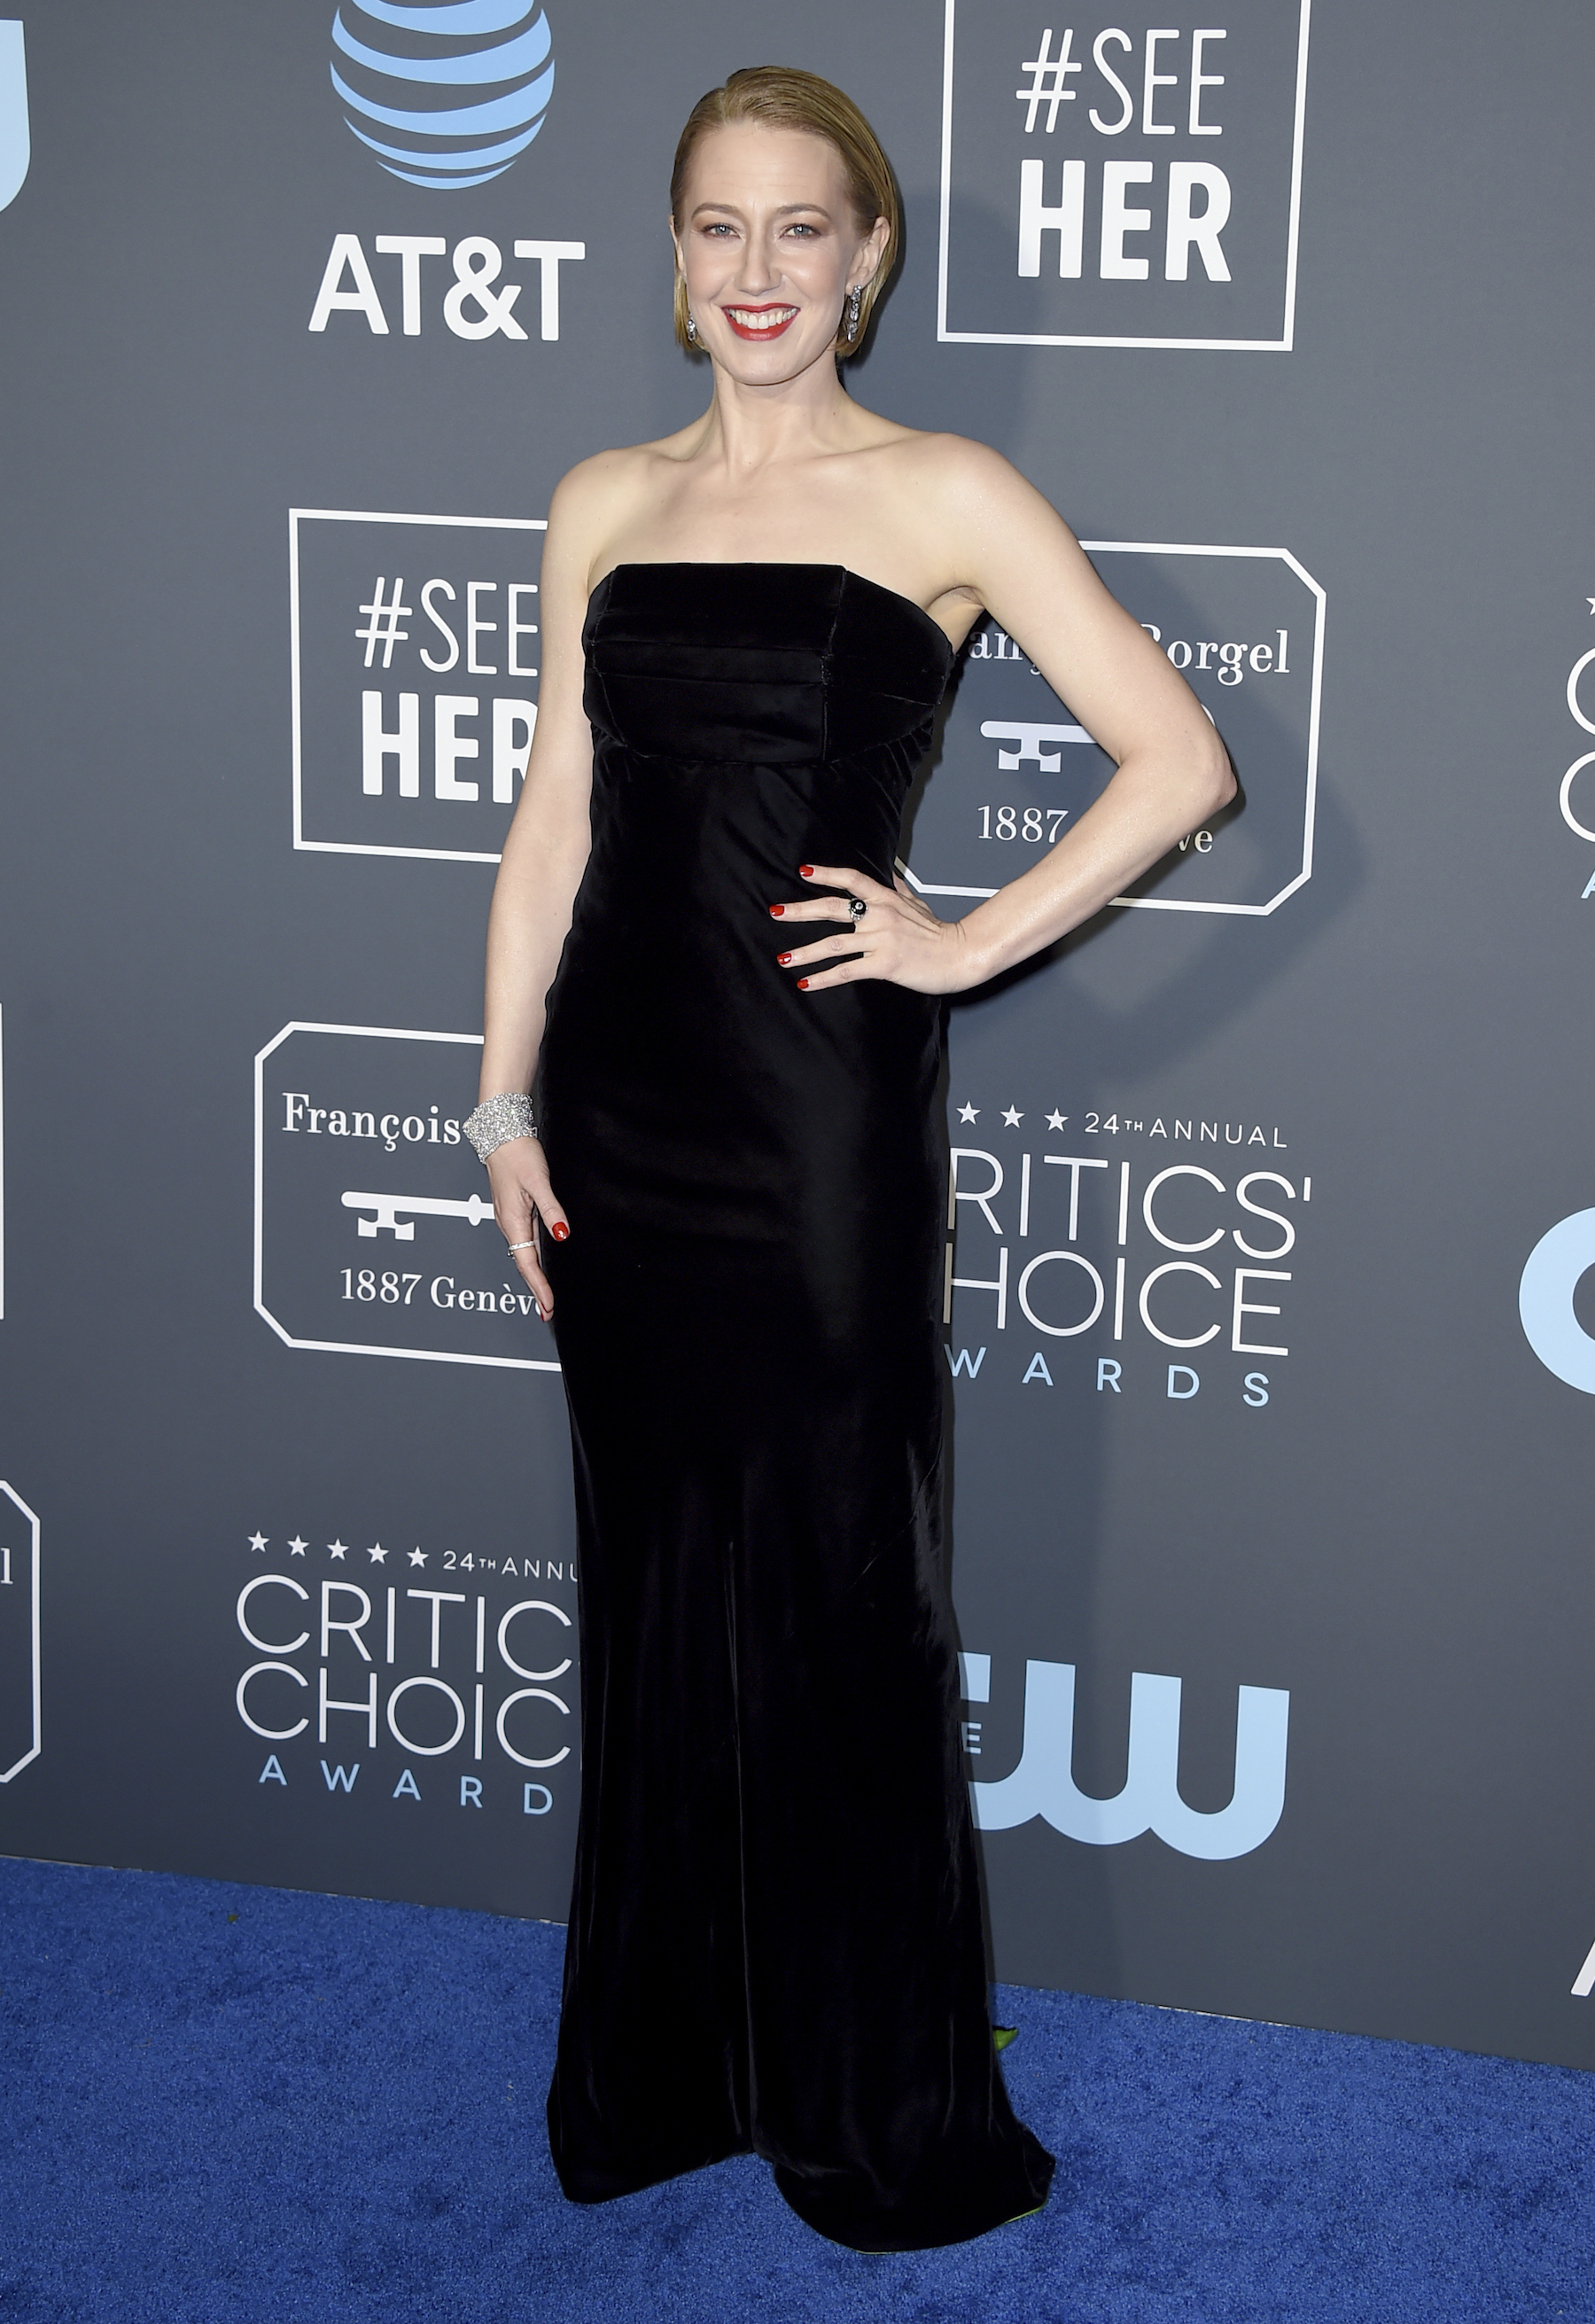 "<div class=""meta image-caption""><div class=""origin-logo origin-image ap""><span>AP</span></div><span class=""caption-text"">Carrie Coon arrives at the 24th annual Critics' Choice Awards on Sunday, Jan. 13, 2019, at the Barker Hangar in Santa Monica, Calif. (Jordan Strauss/Invision/AP)</span></div>"